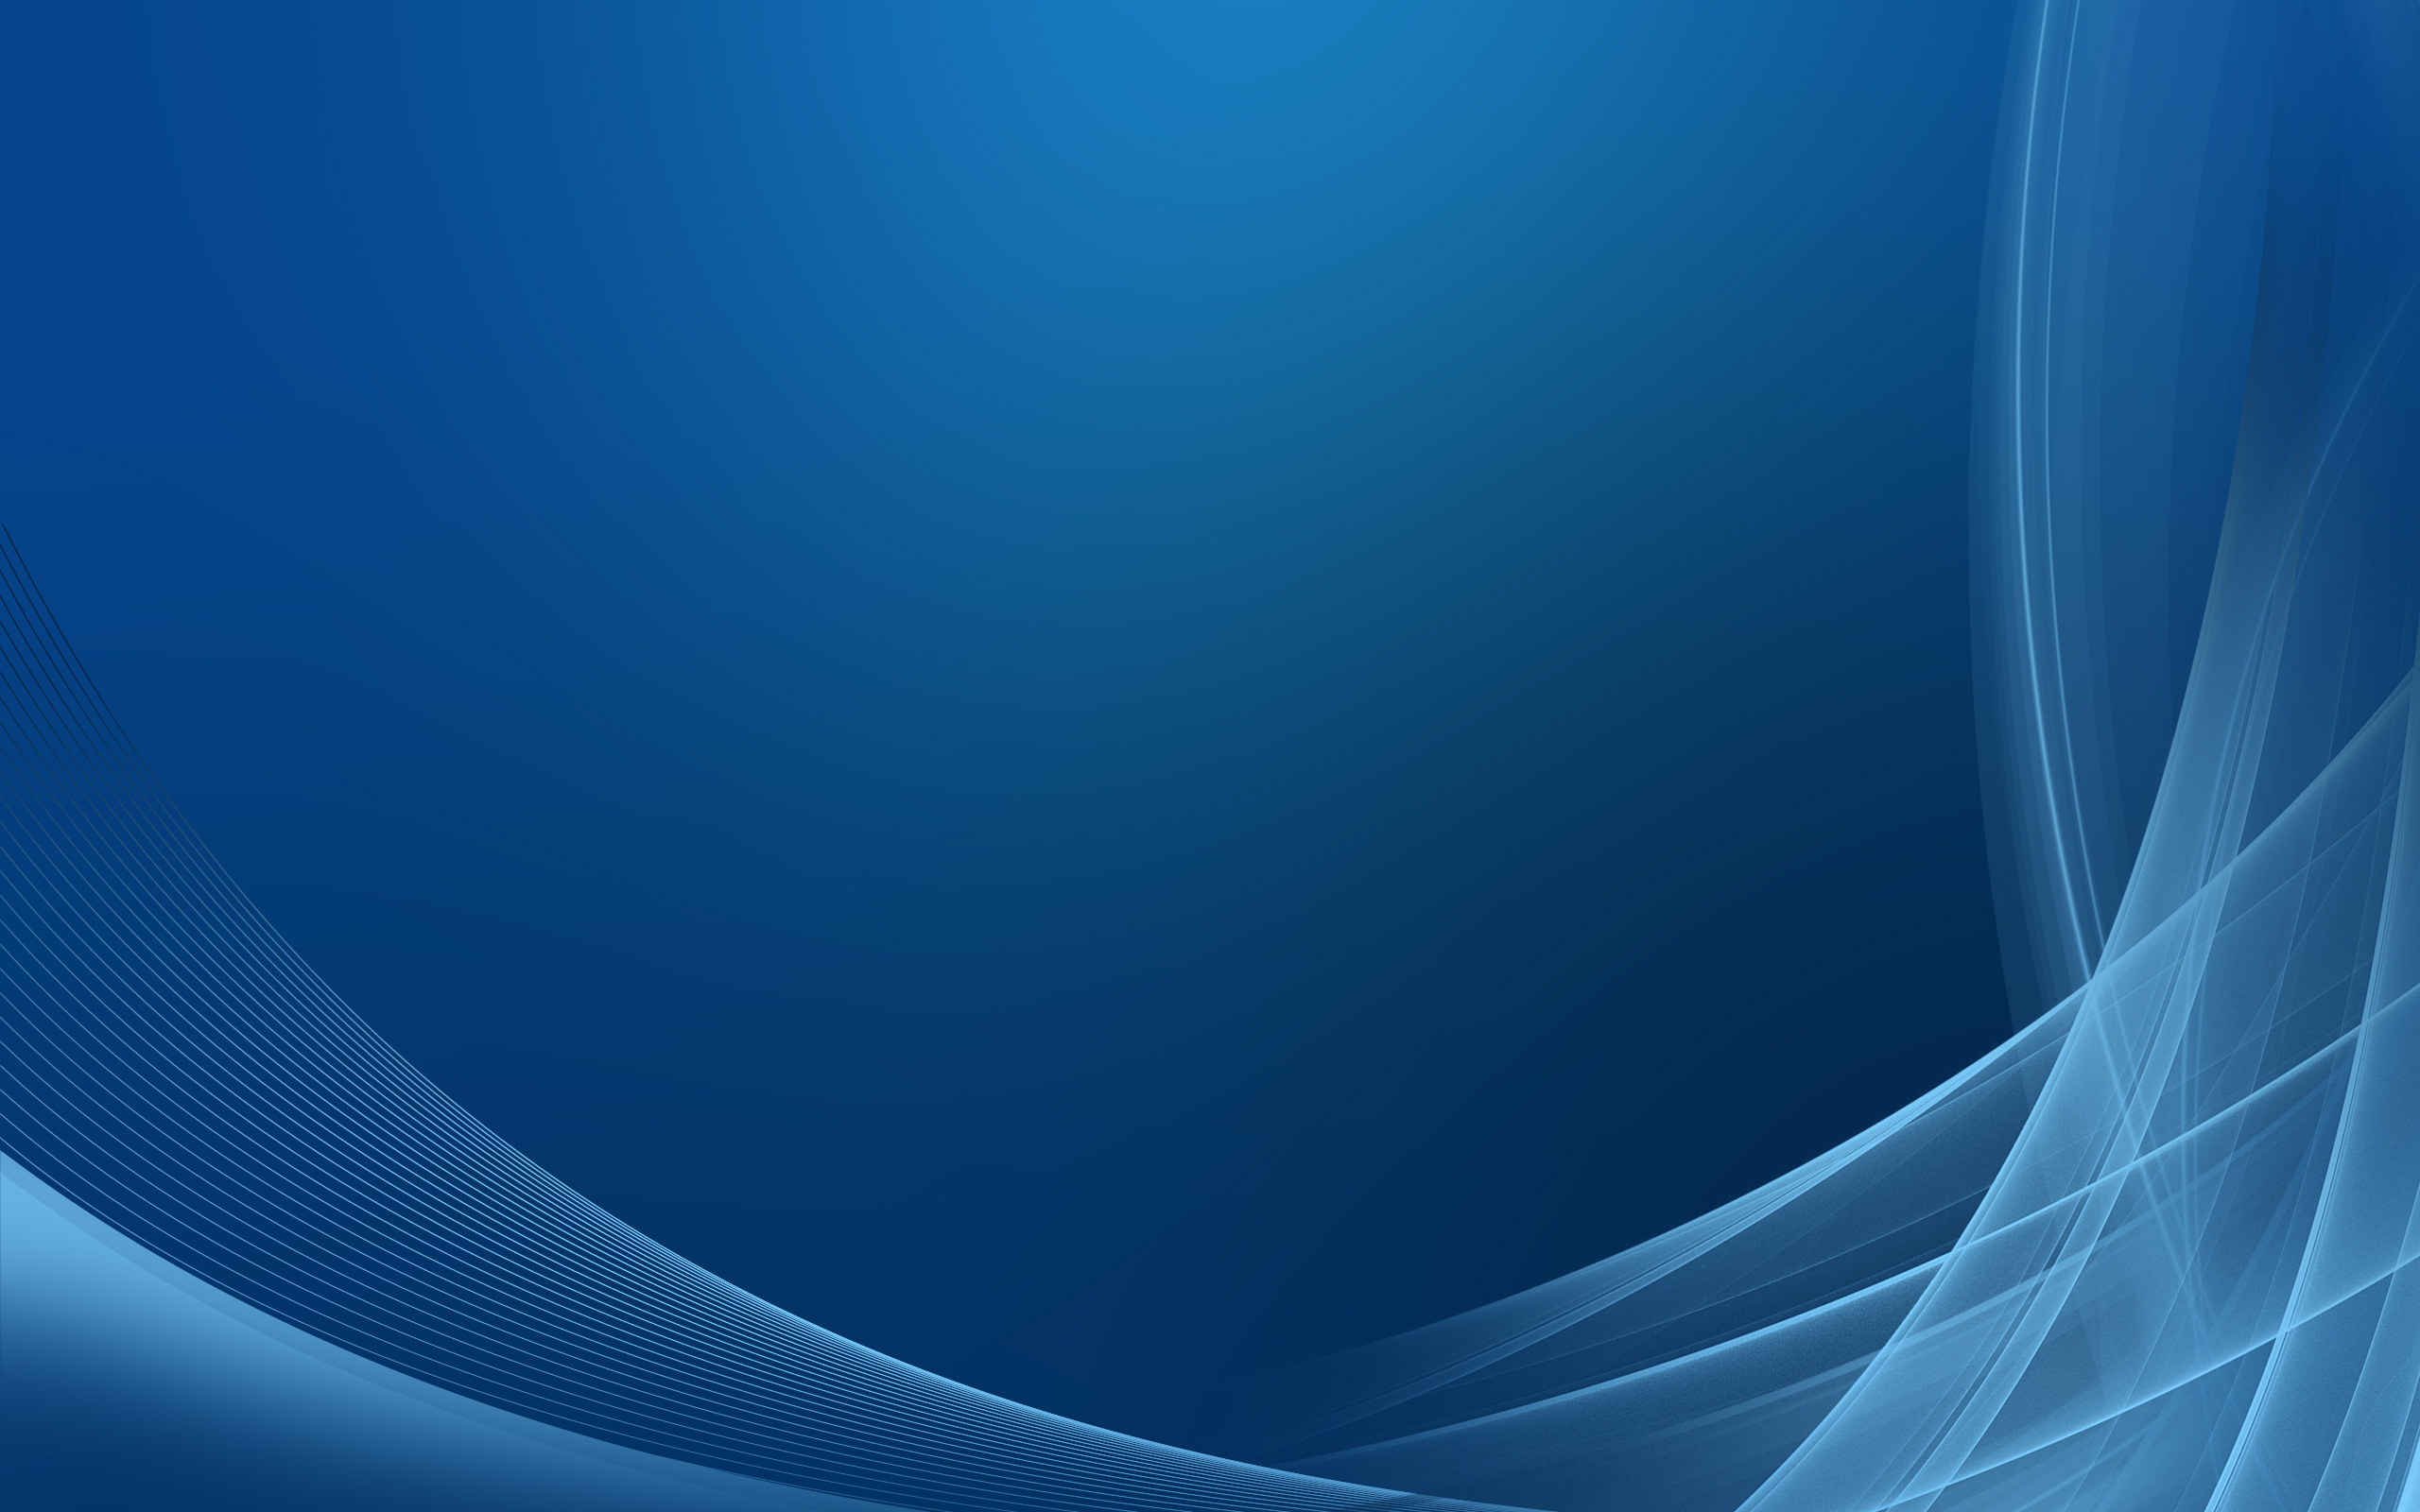 10 Latest Blue Abstract Wallpaper Hd Full Hd 1080p For Pc: Abstract Blue Wallpaper